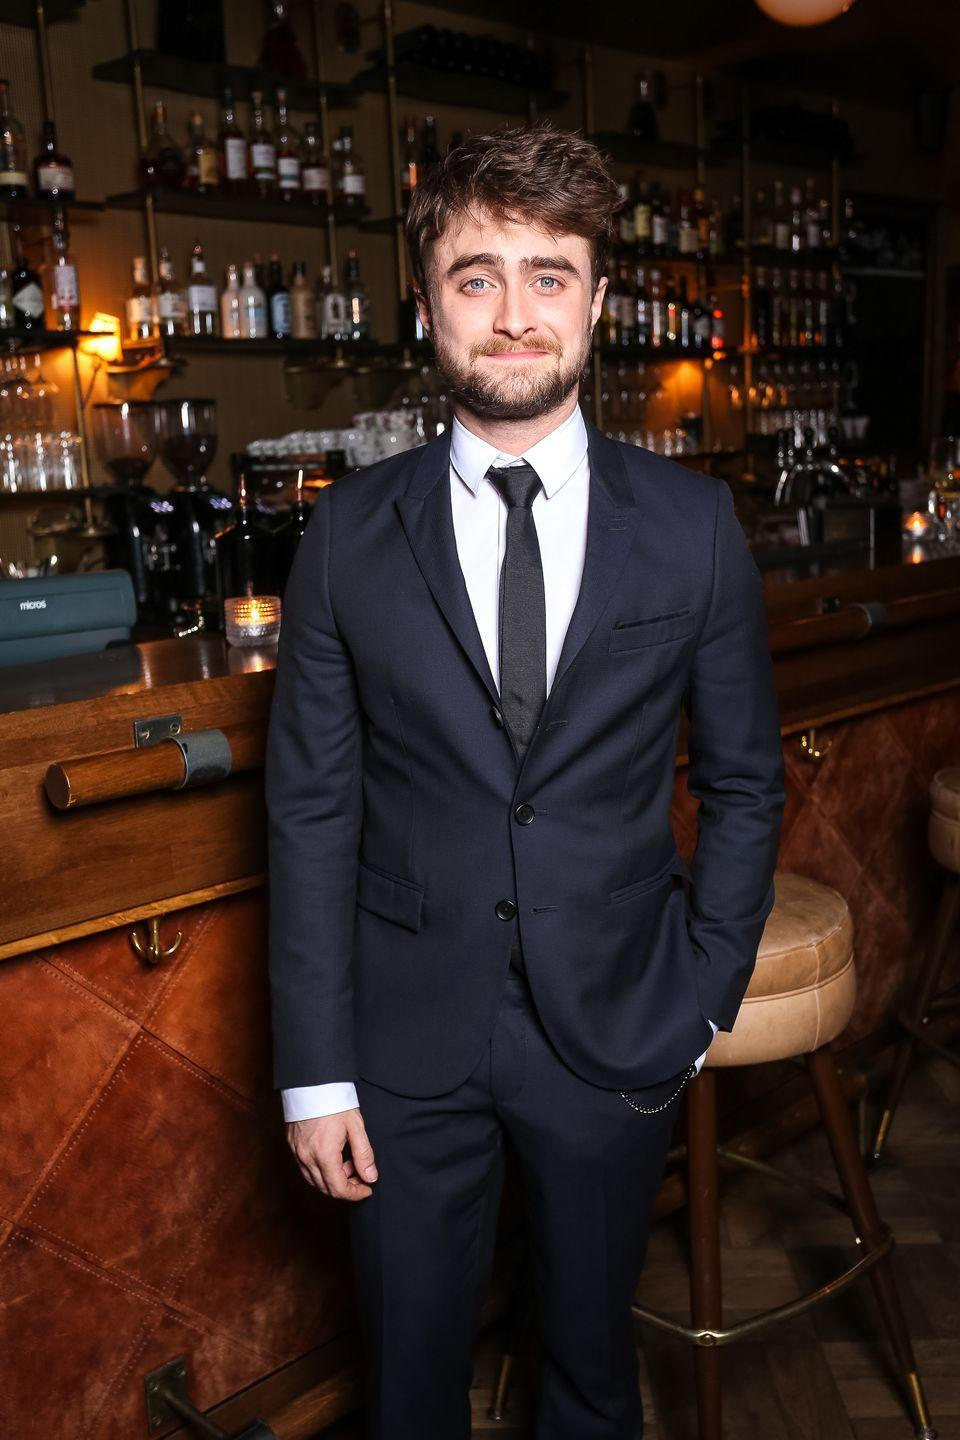 "<p>Radcliffe admitted in an interview with <em><a href=""http://www.playboy.com/articles/20q-daniel-radcliffe"" rel=""nofollow noopener"" target=""_blank"" data-ylk=""slk:Playboy"" class=""link rapid-noclick-resp"">Playboy</a> </em>he doesn't like watching the 2009 film because, ""I'm just not very good in it. I hate it...my acting is very one-note and I can see I got complacent and what I was trying to do just didn't come across. My best film is the fifth one [<em>Order of the Phoenix</em>] because I can see a progression."" </p>"